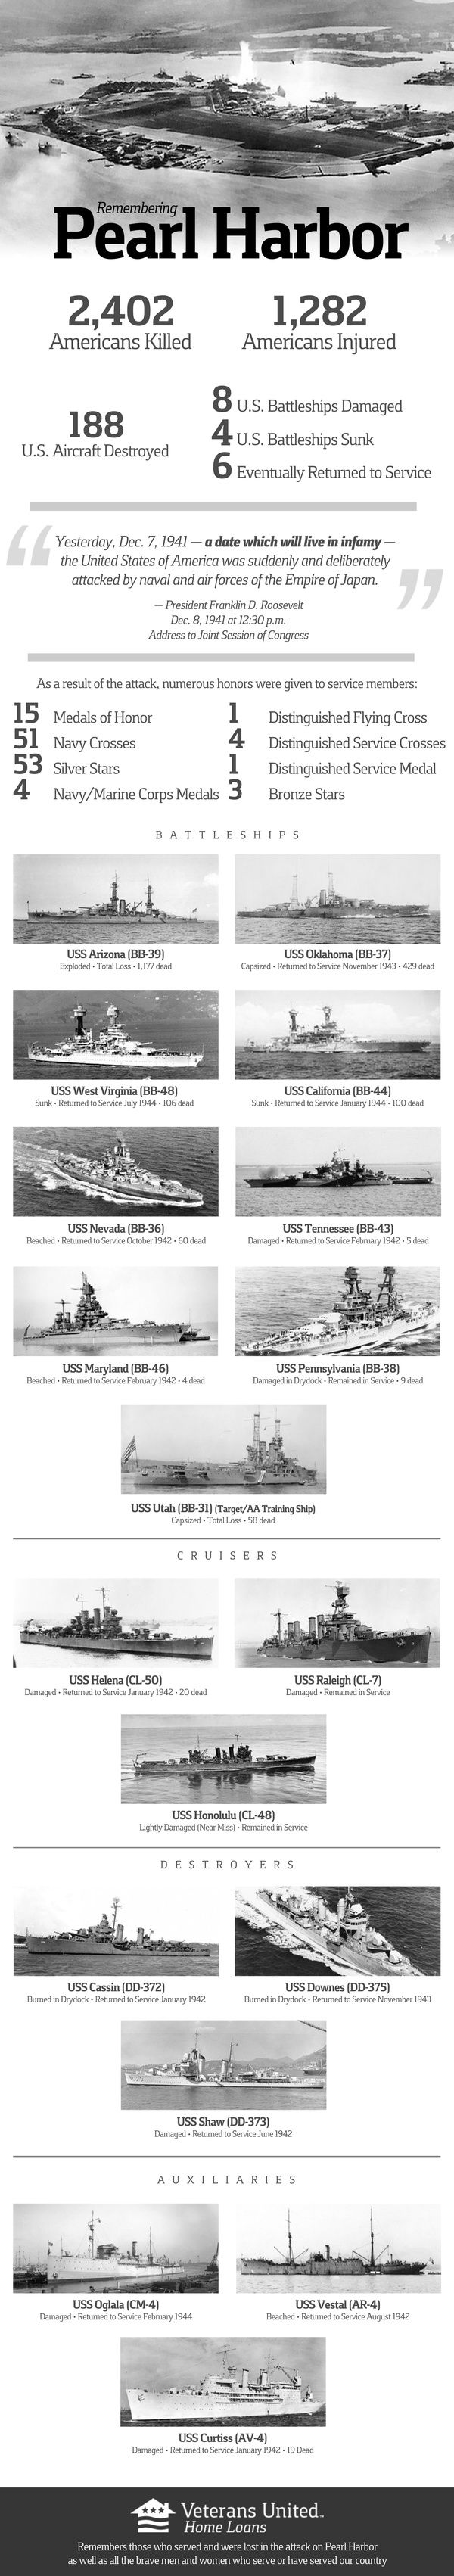 This image gives the statistics of the effects from Japan's attack on Pearl…